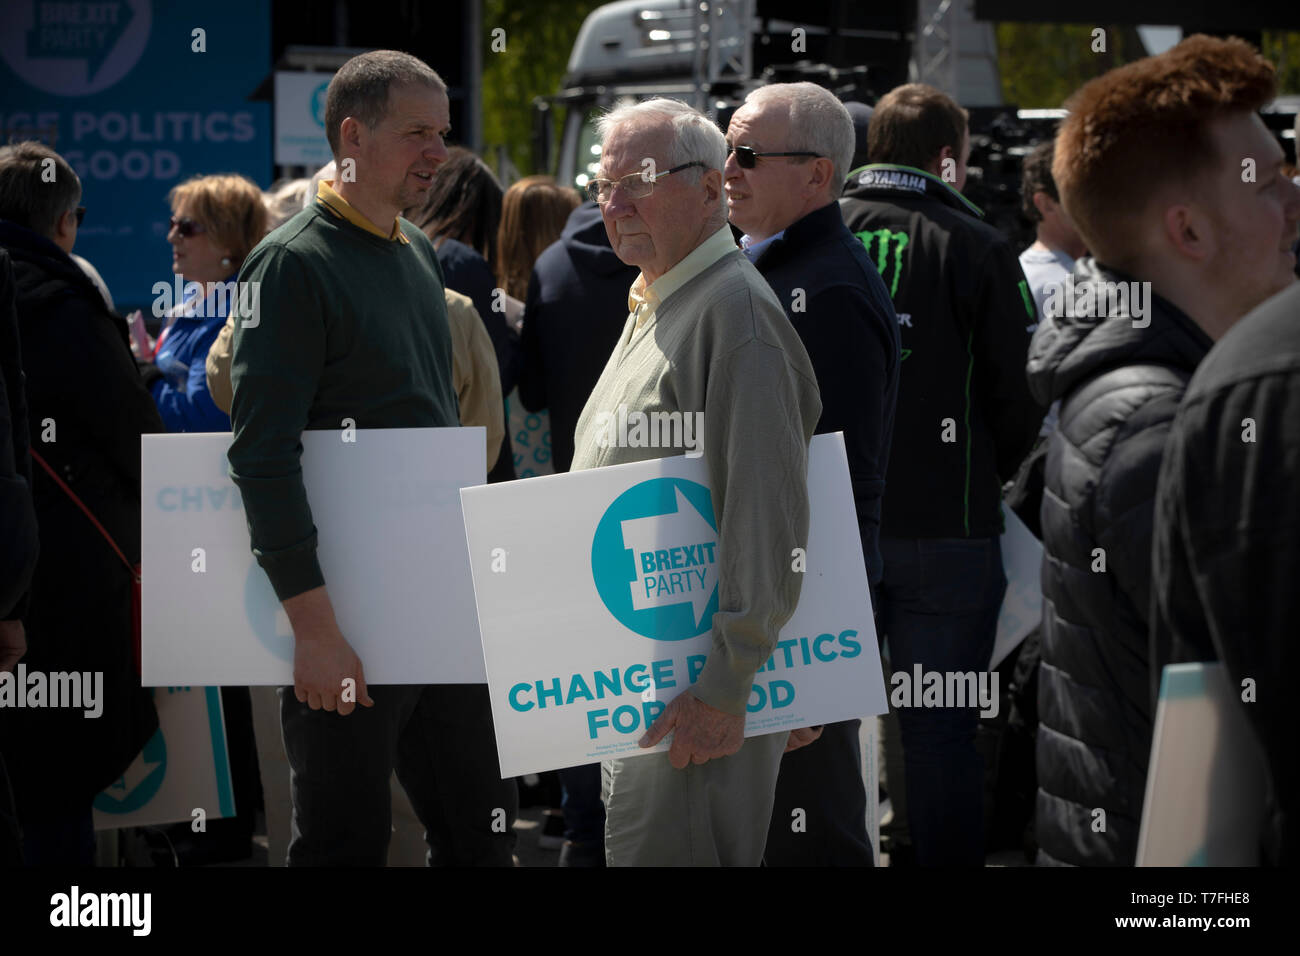 Supporters gathering at a Brexit Party event in Chester, Cheshire where the new party's leader Nigel Farage gave the main address. Mr Farage was joined on the platform by his party colleague Ann Widdecombe, the former Conservative government minister. And other prominent party members. The event was attended by around 300 people and was one of the first since the formation of the Brexit Party by Nigel Farage in Spring 2019. - Stock Image